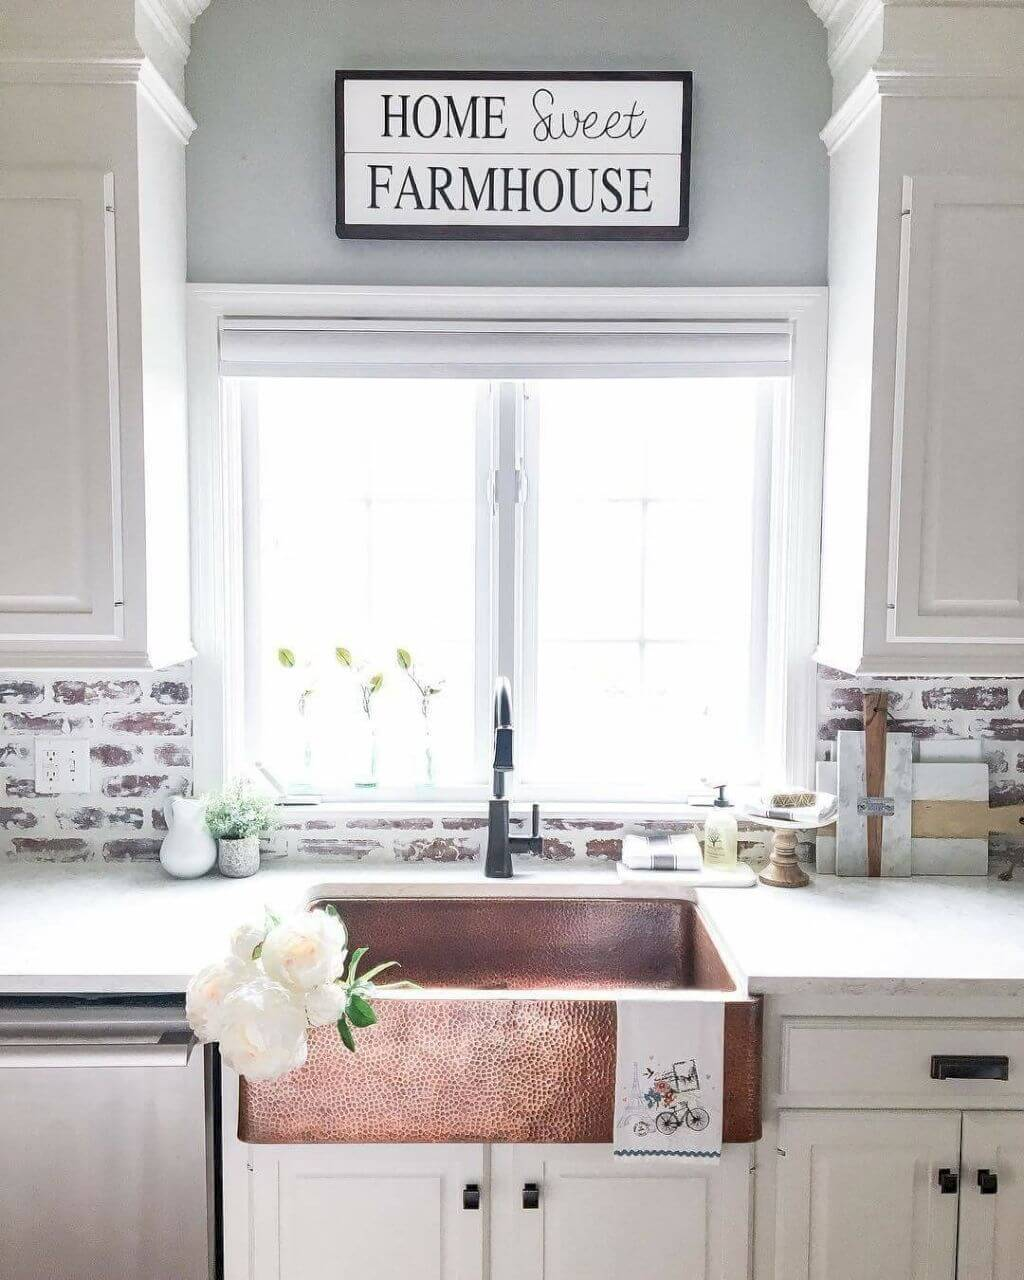 8 Best Farmhouse Kitchen Backsplash Ideas And Designs For 2020